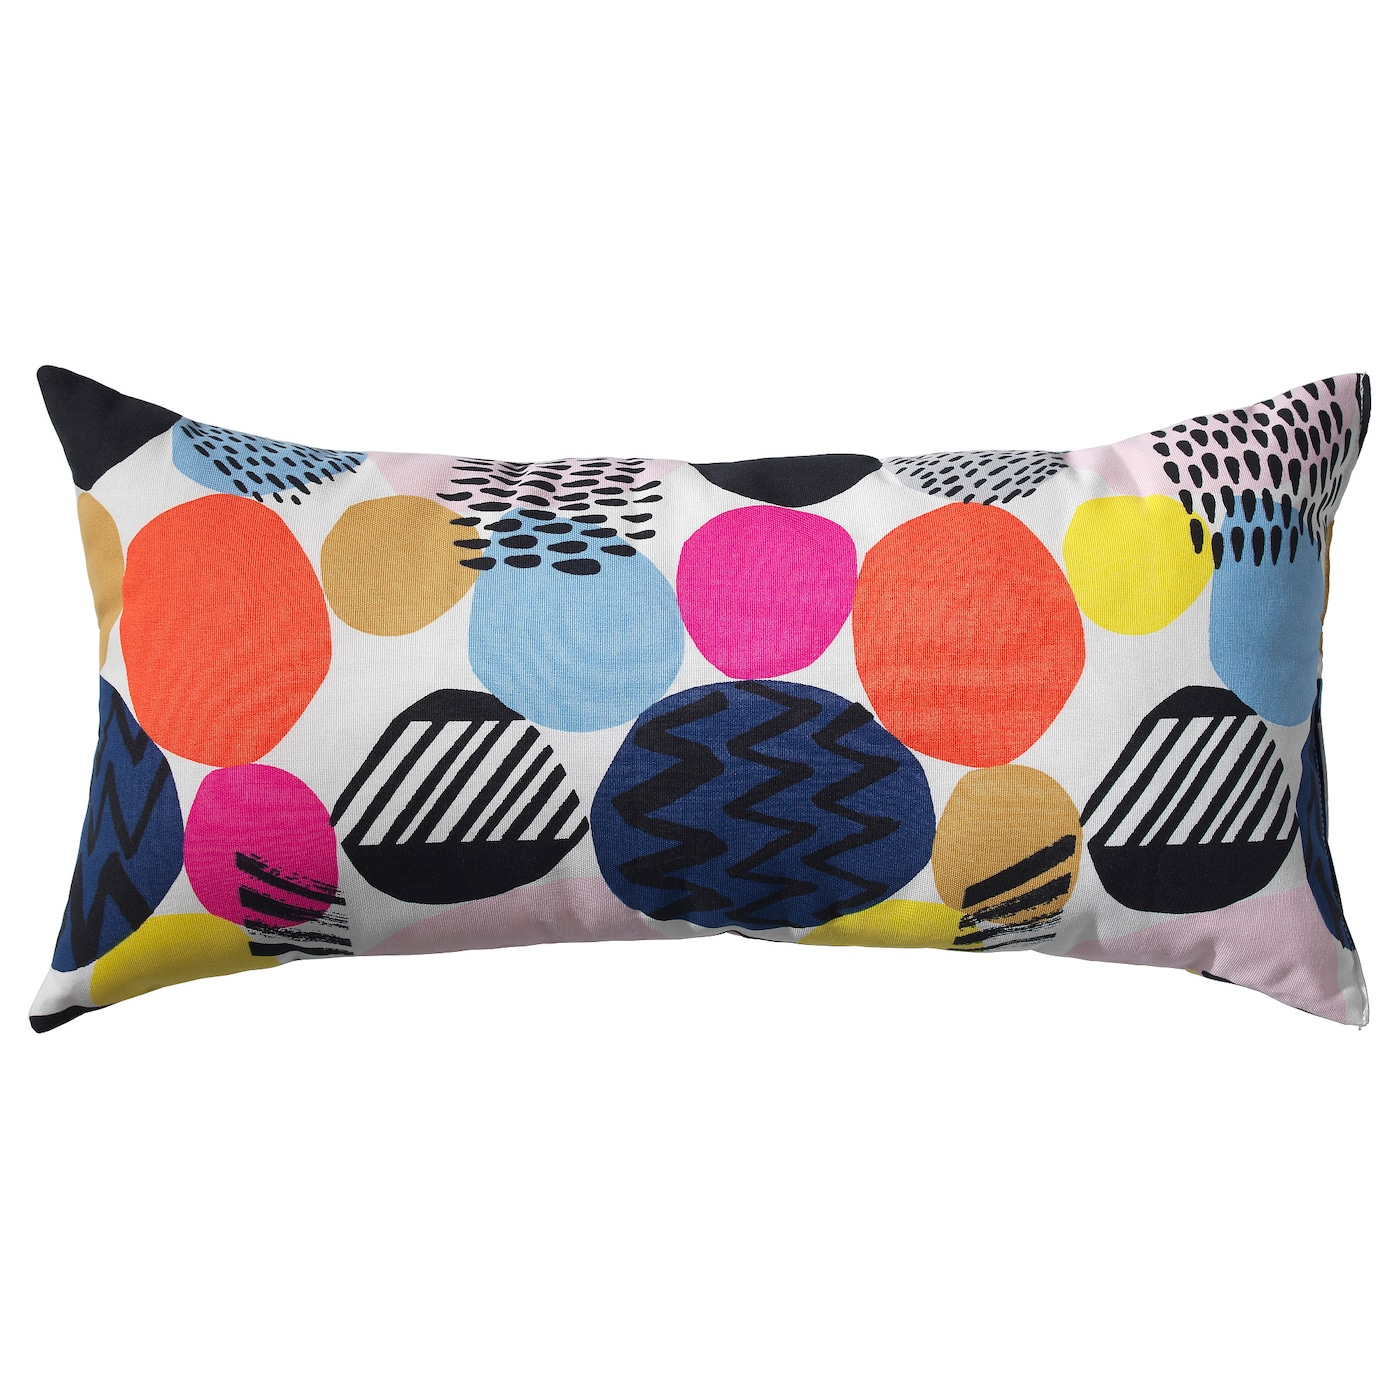 IKEA NEDJA cushion The polyester filling holds its shape and gives your body soft support.